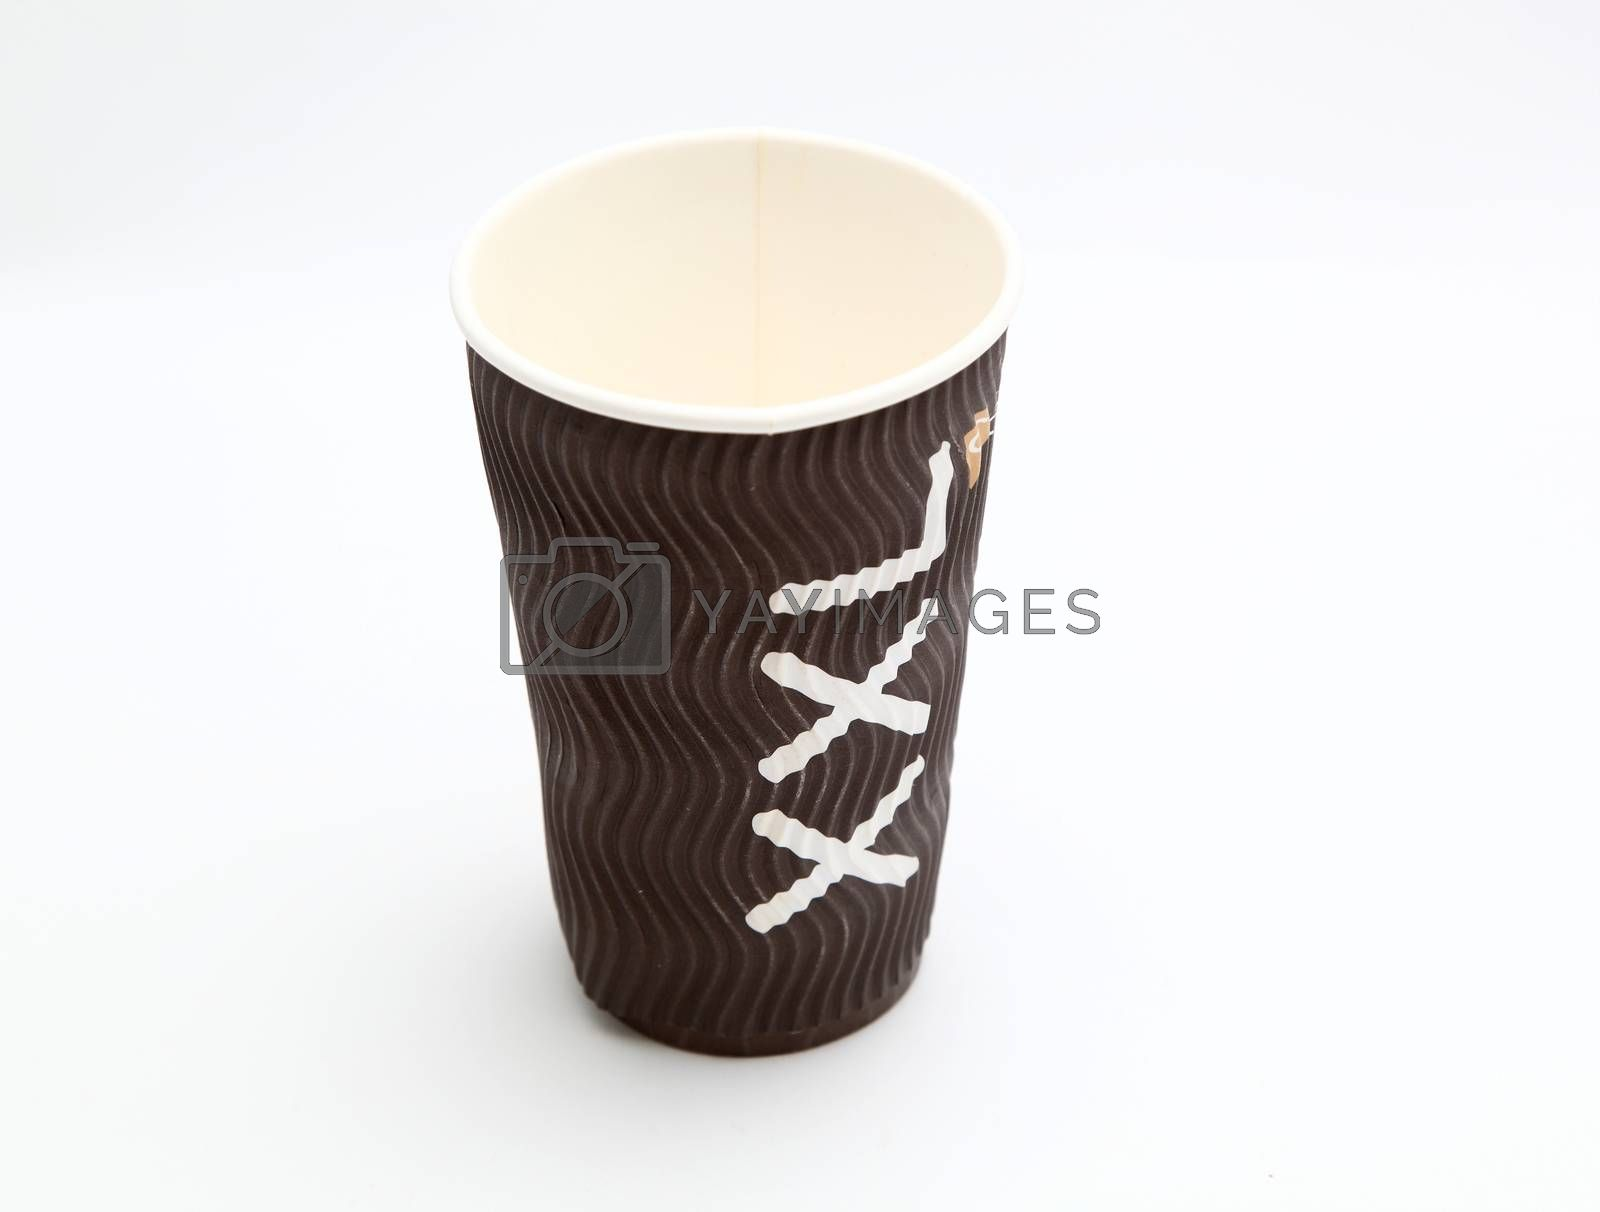 cardboard cup on white background